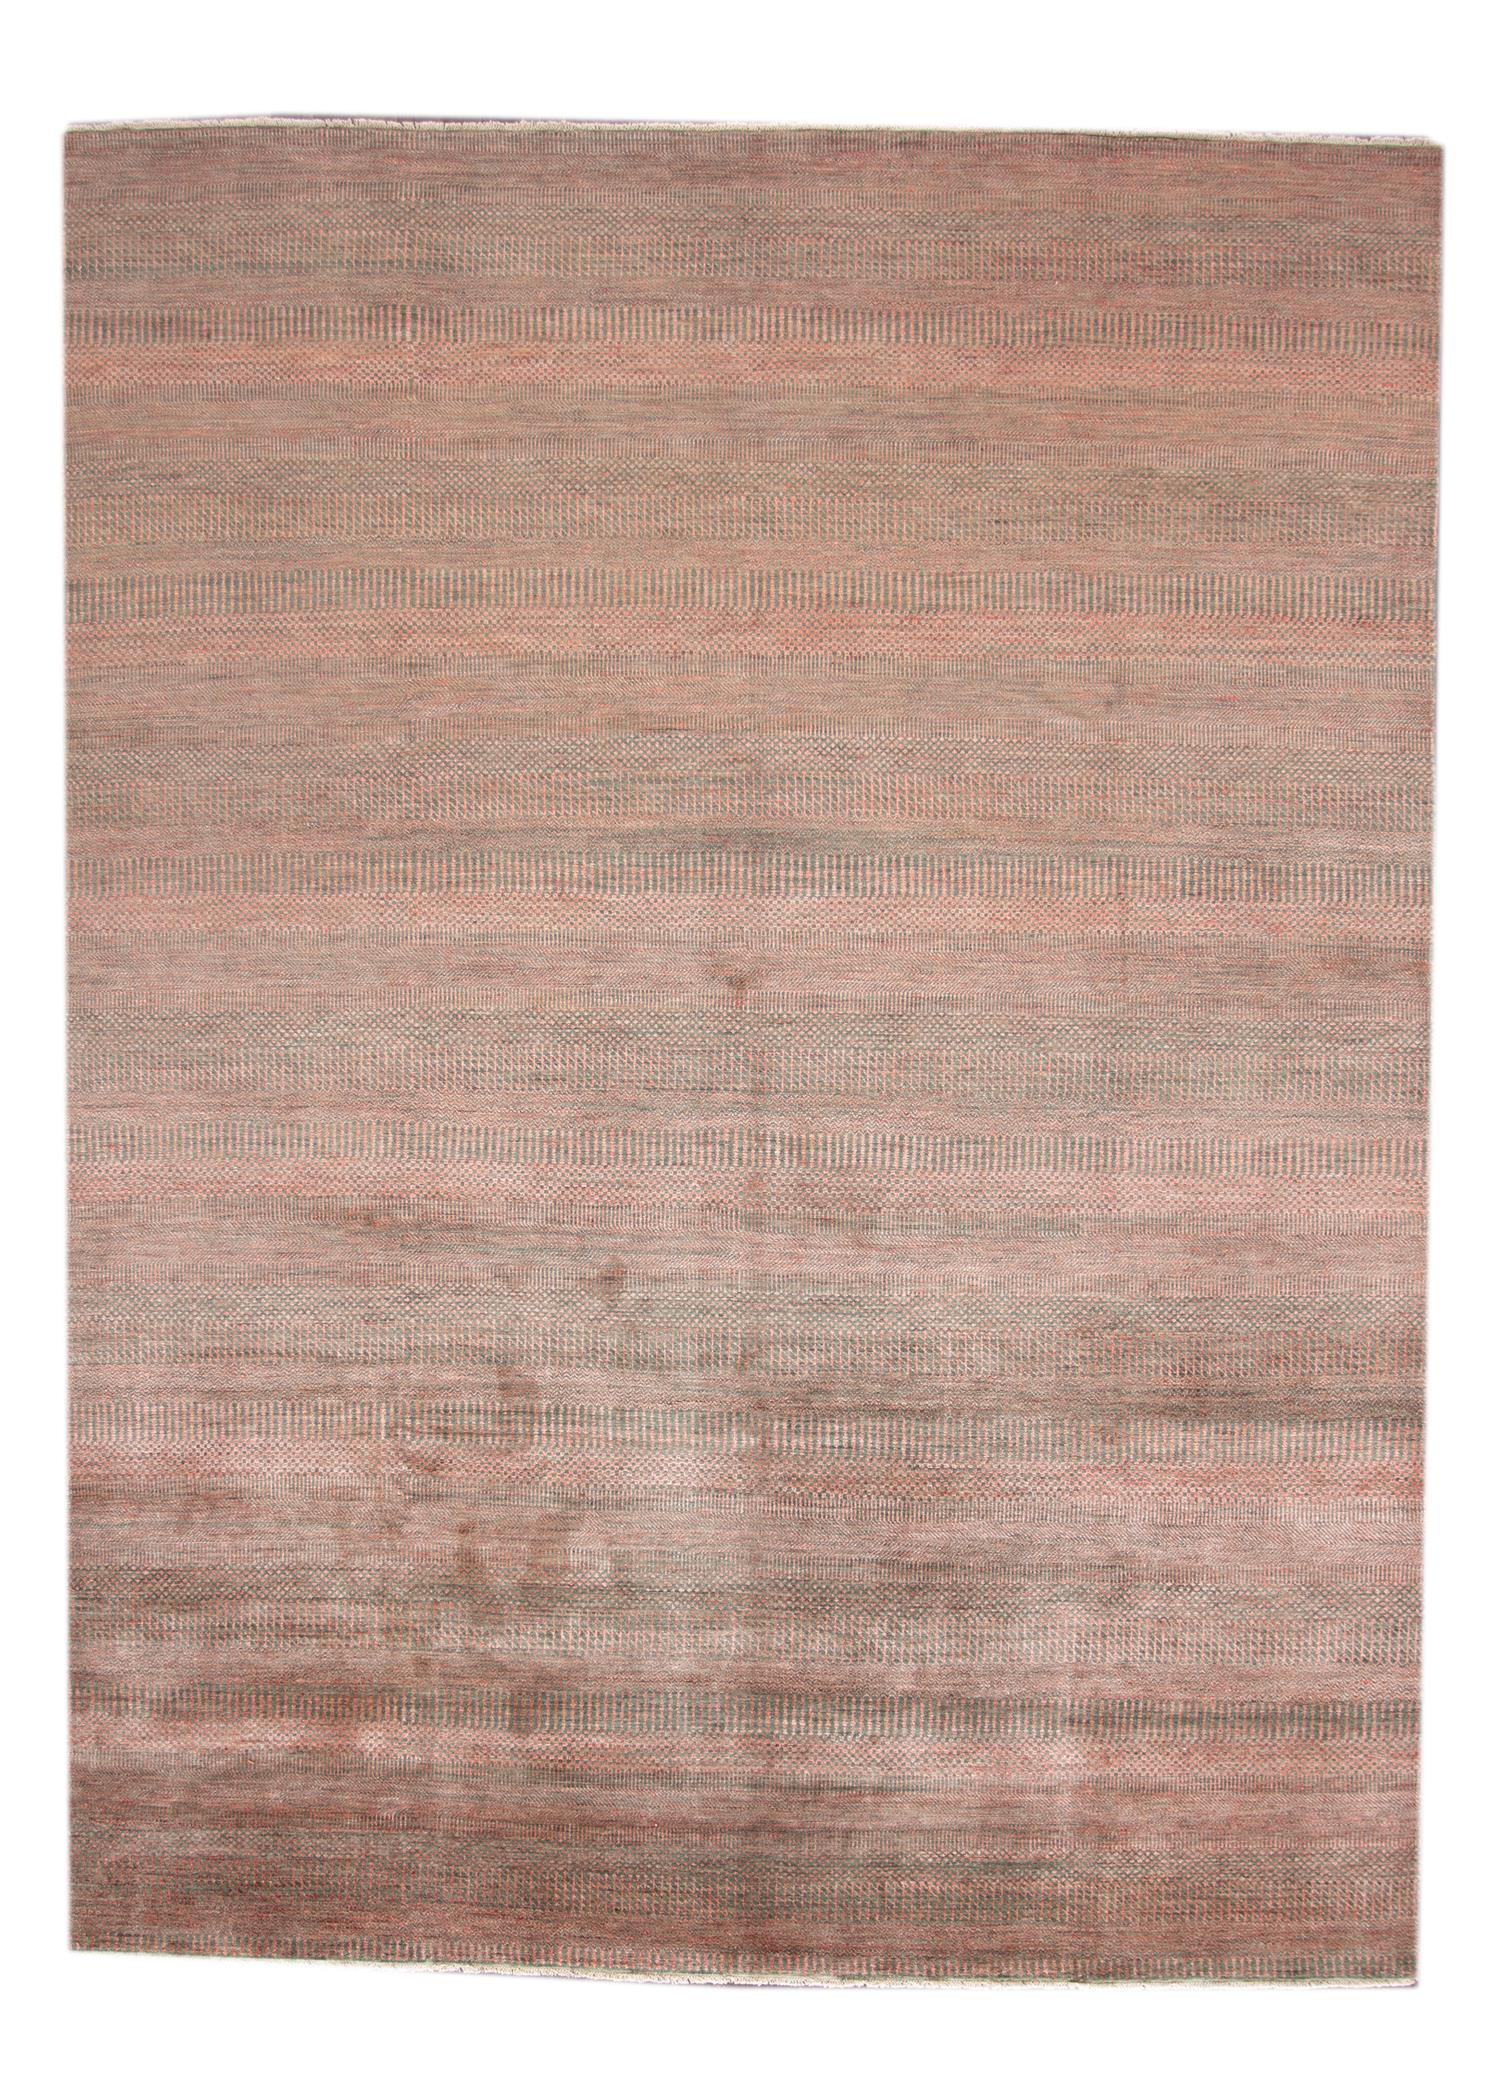 21st Century Contemporary Savannah Rug, 9X12